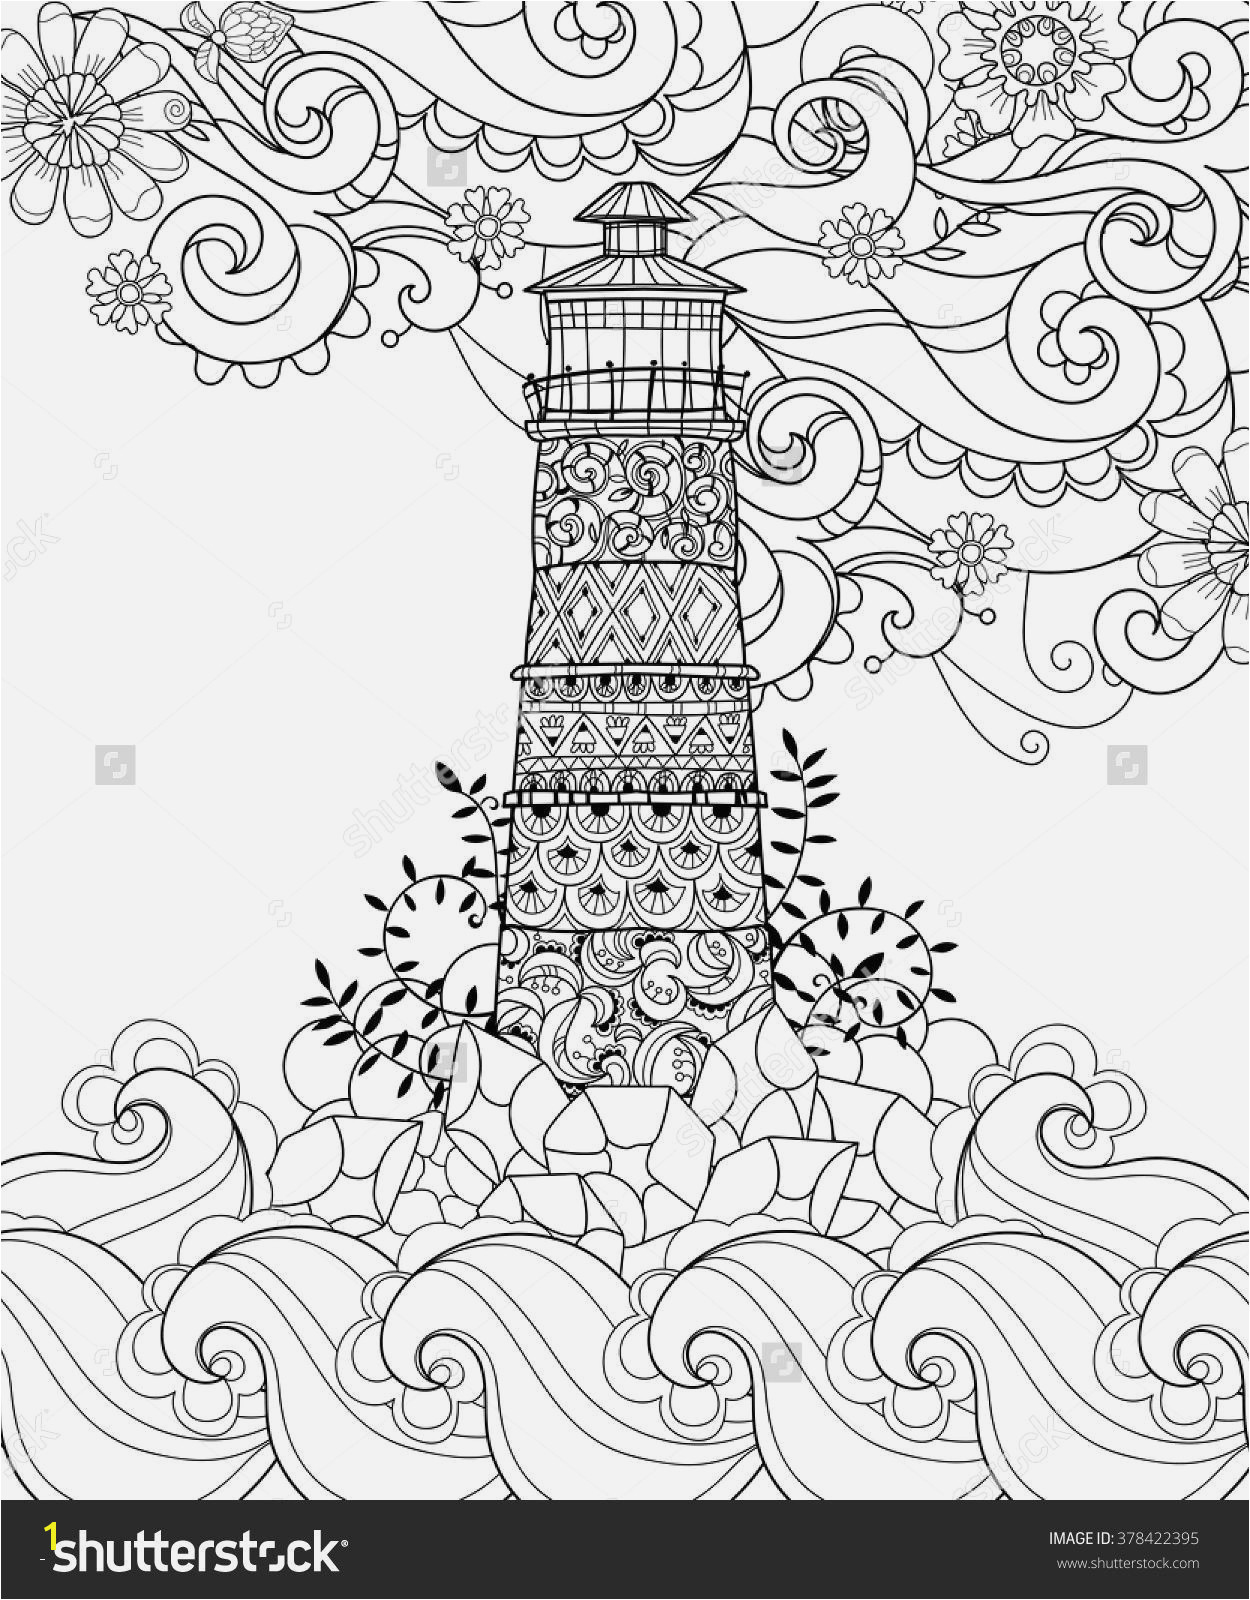 Cupcake Coloring Pages Free Printable Free Printable Cupcake Coloring Pages for Kids Free Coloring Pages